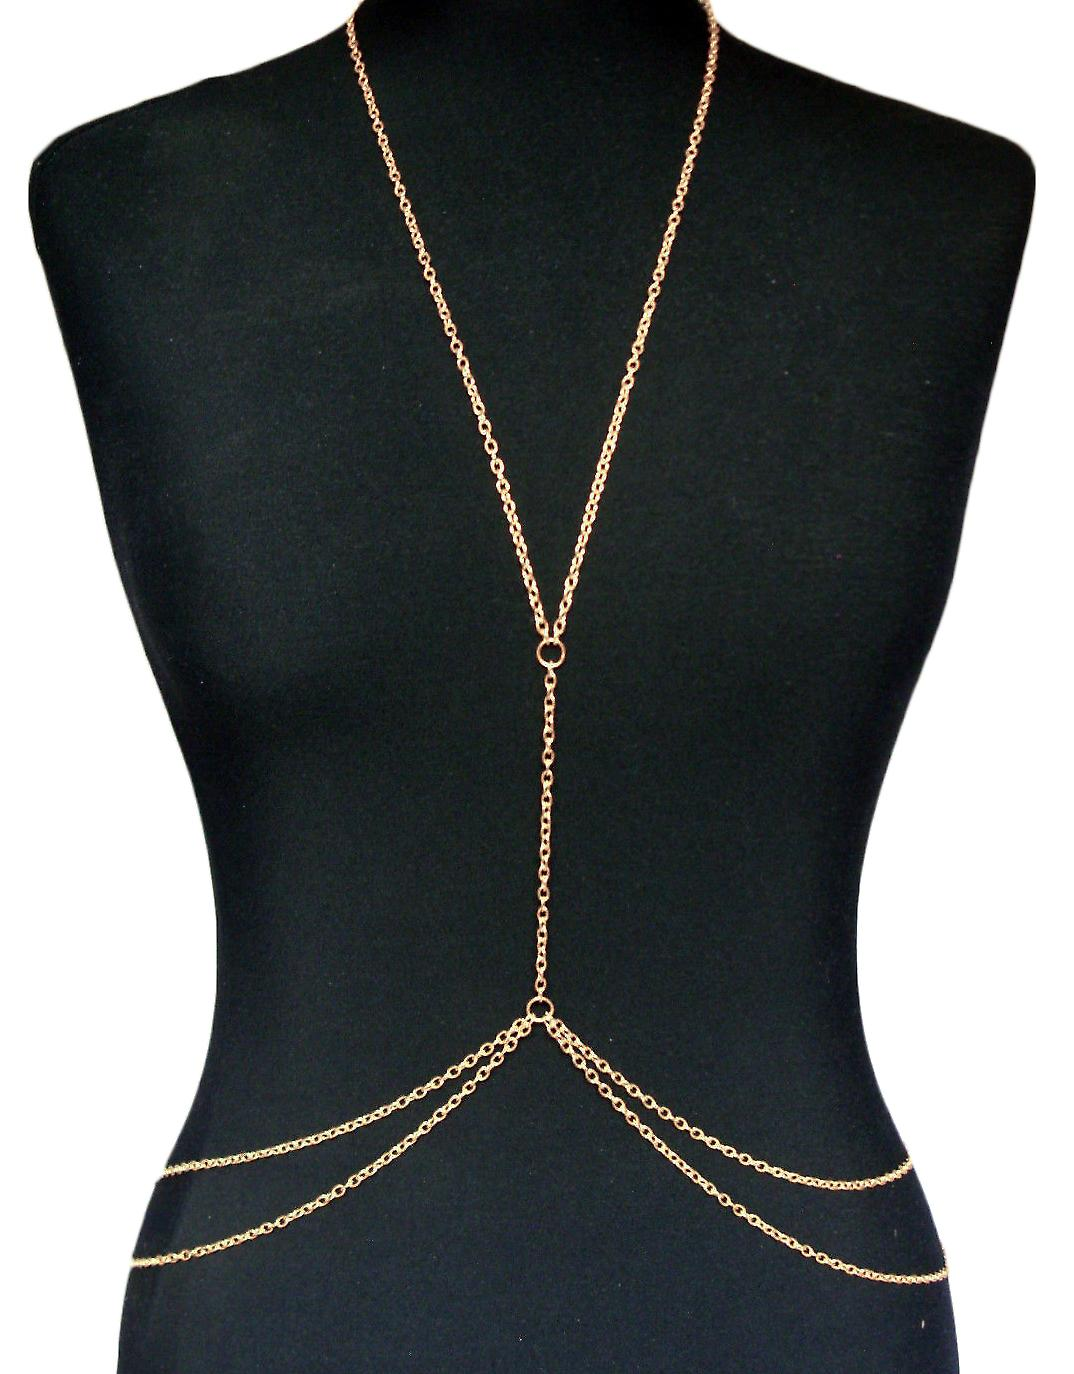 Waooh - Body Jewelry gold chain Ninou